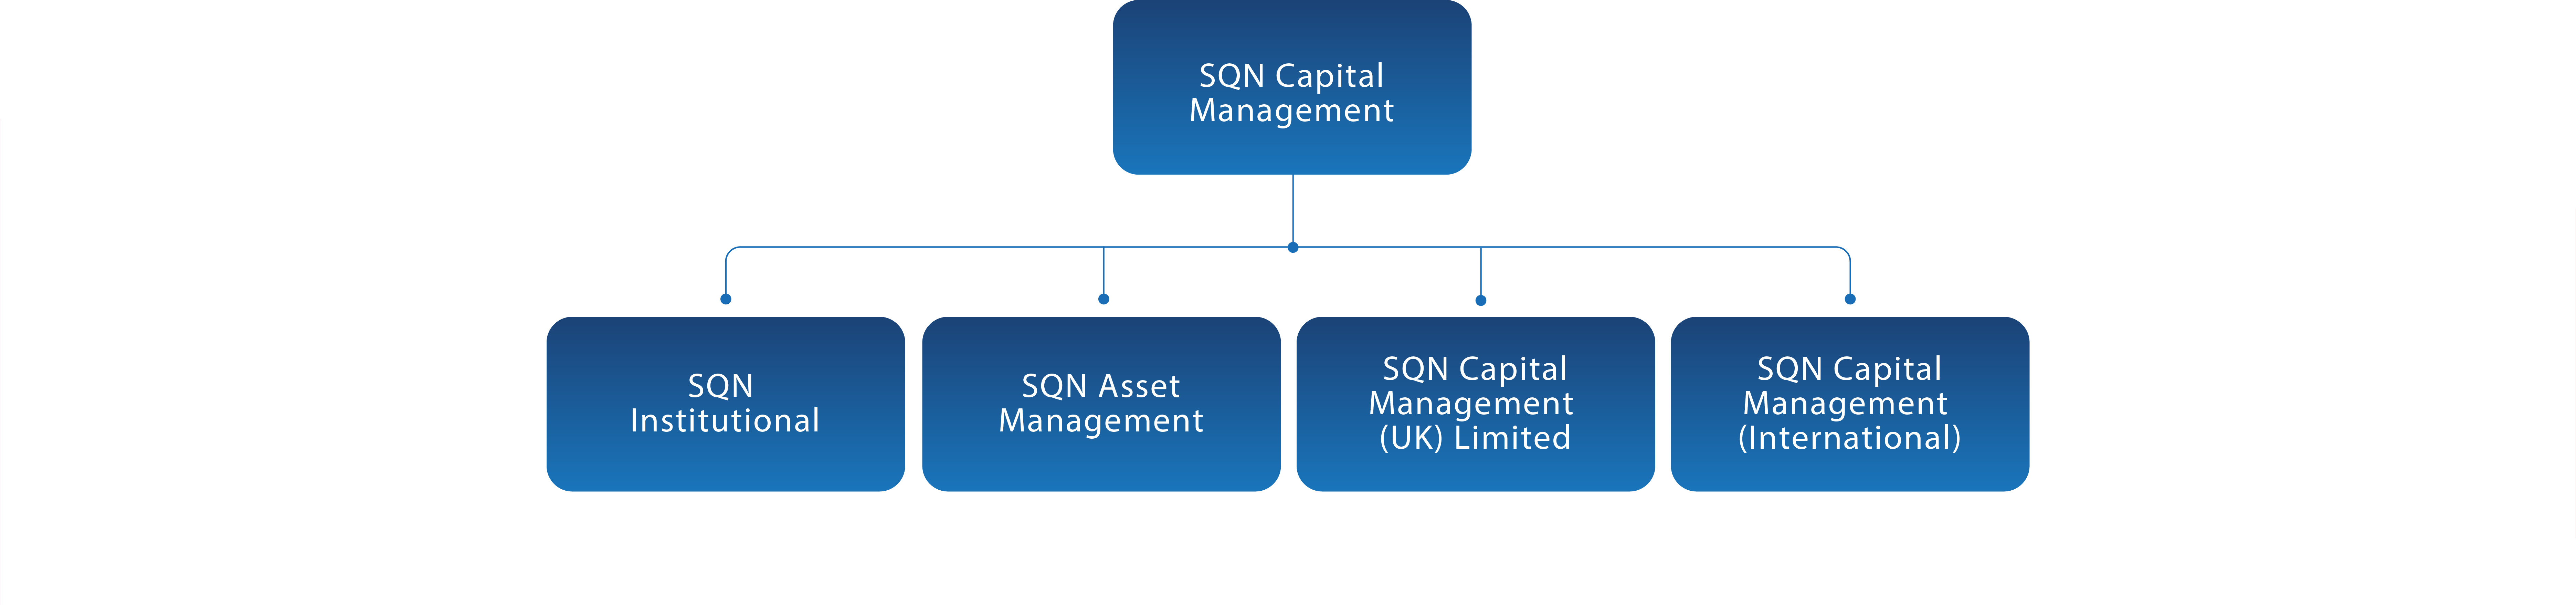 //www.sqncapital.com/wp-content/uploads/2017/07/Our-managers-chart-2-4.png